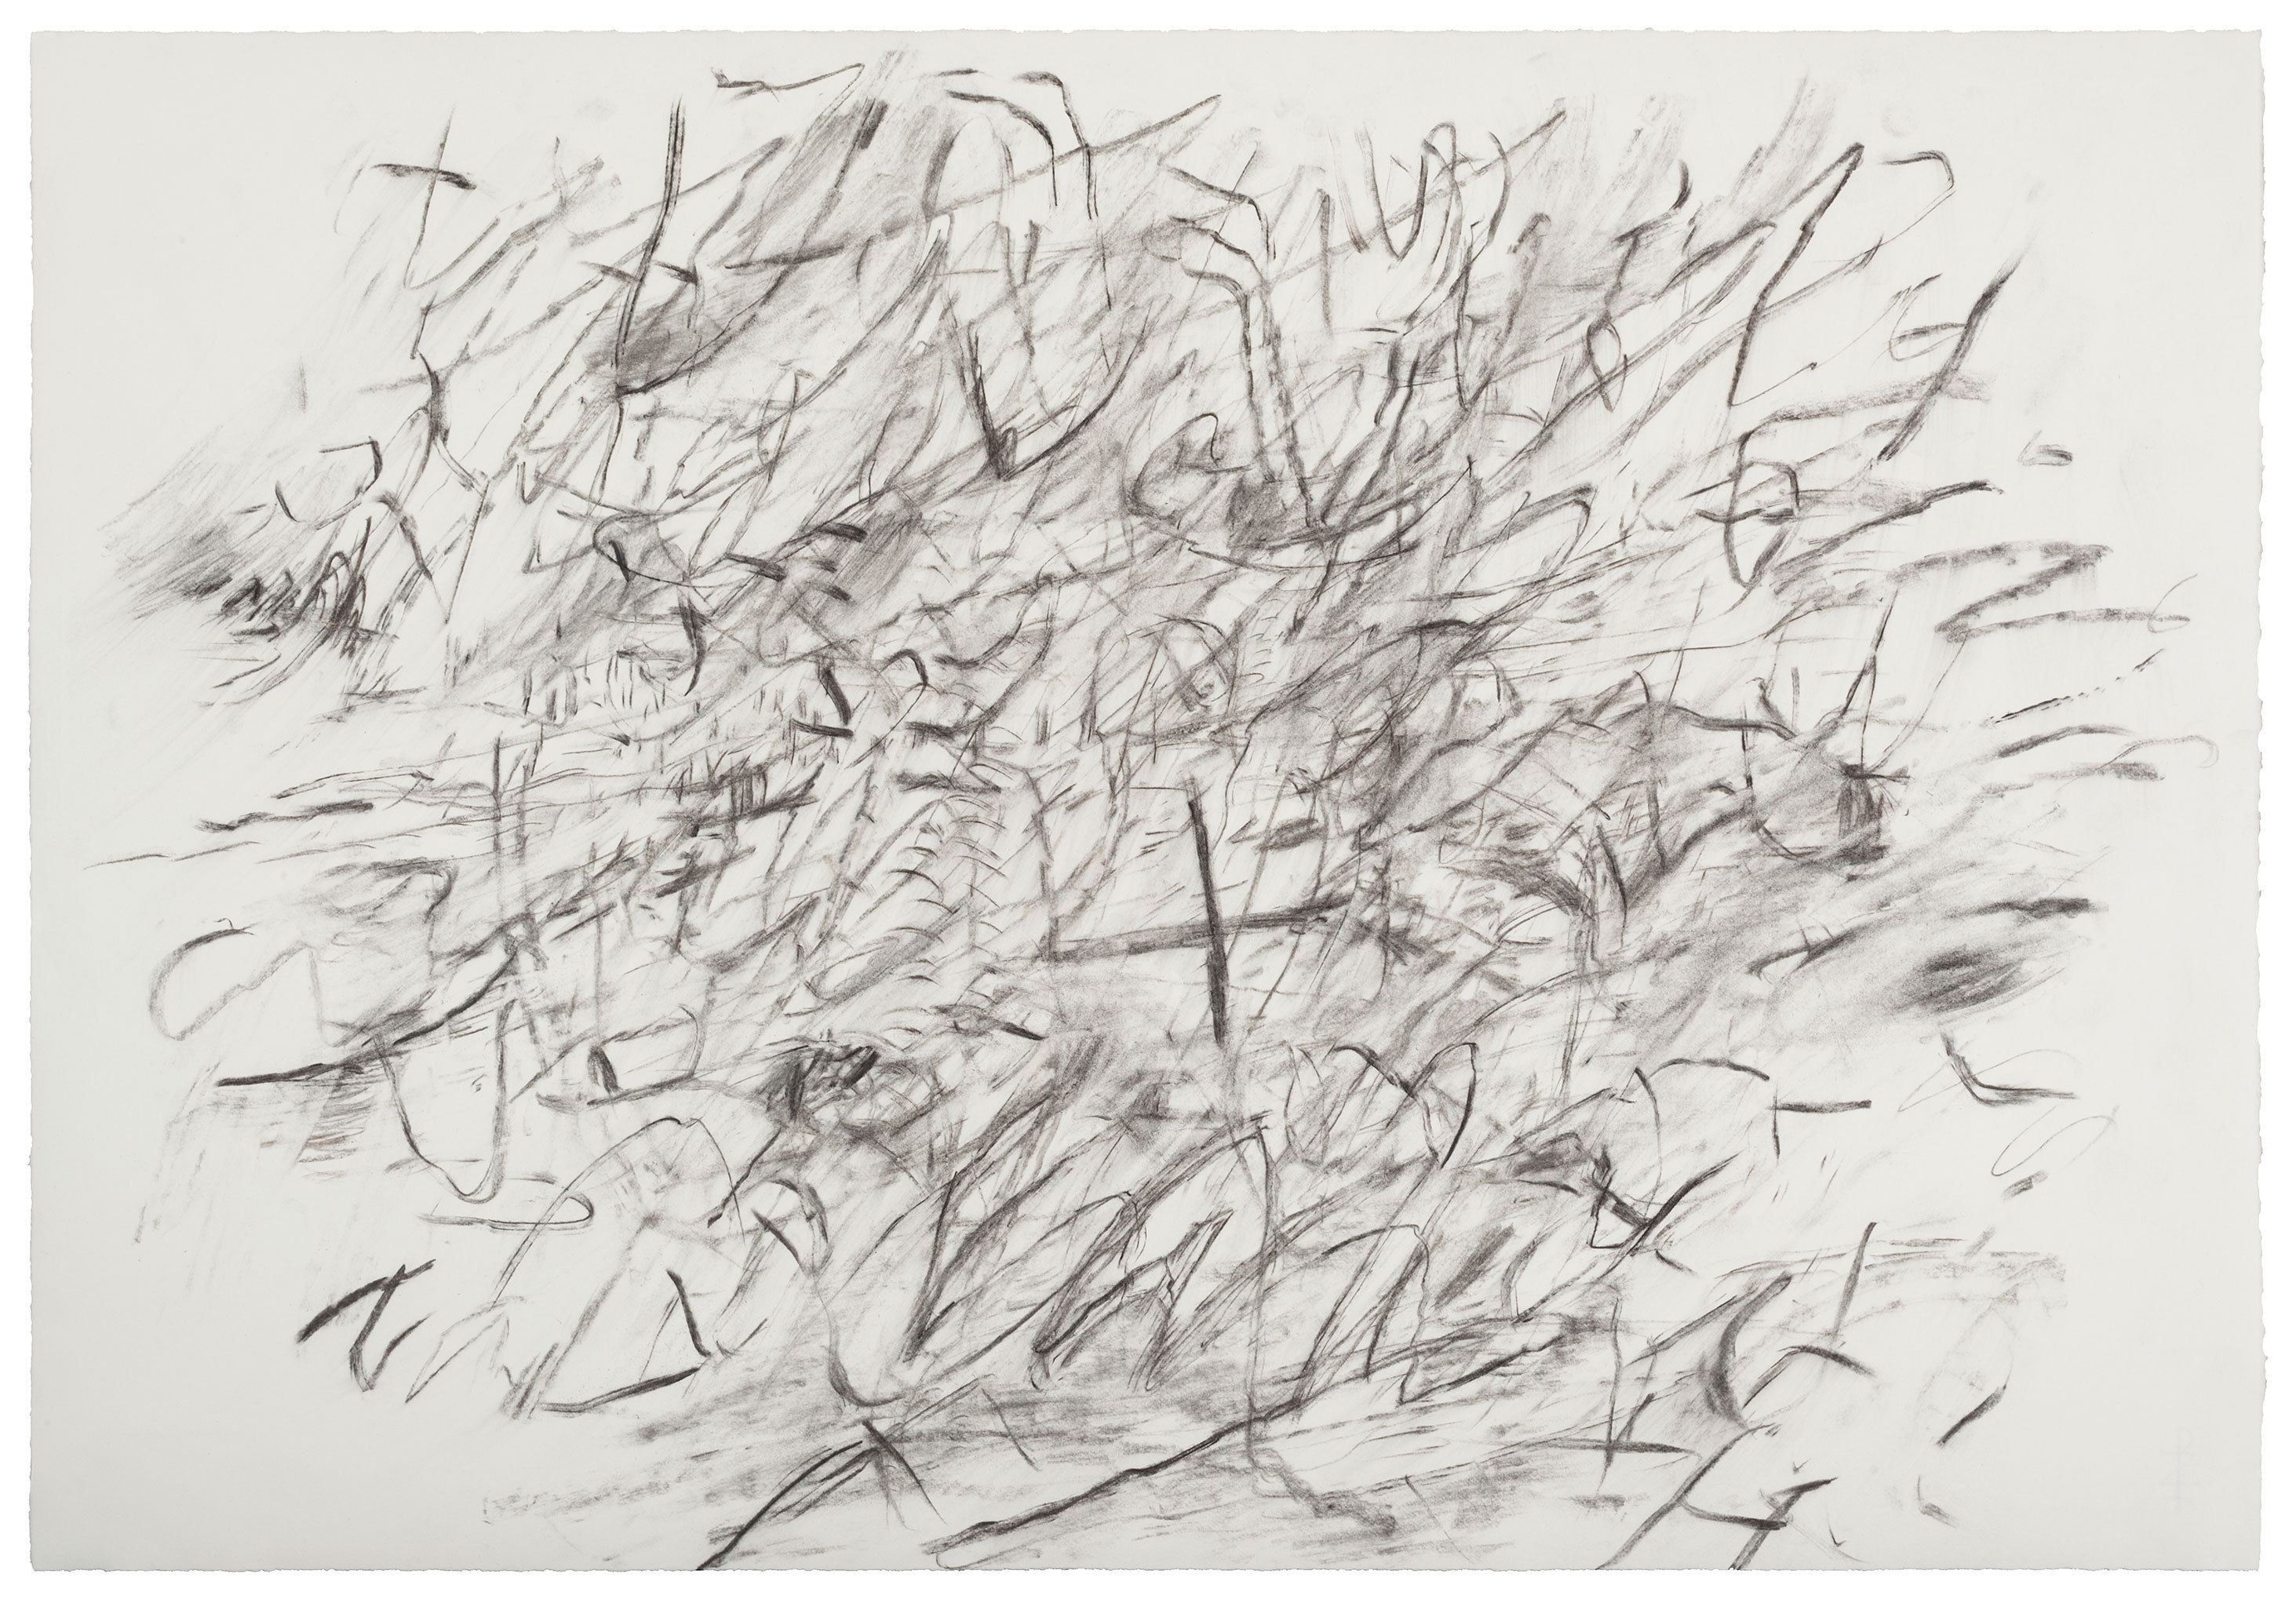 Julie Mehretu: Untitled.